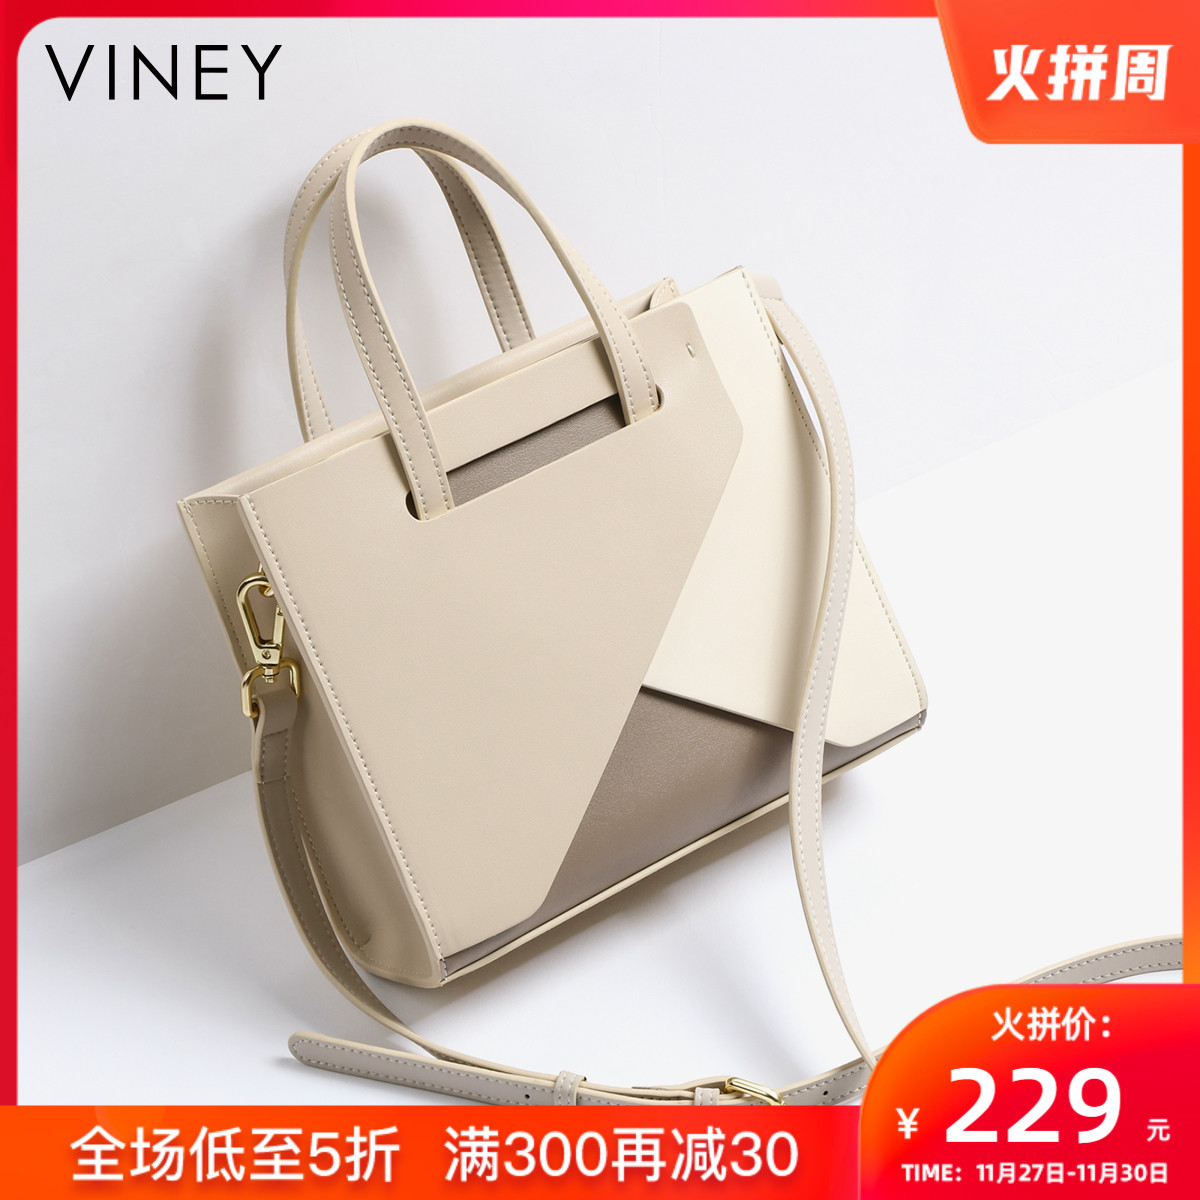 Viney small bag 2020 new fashion leather messenger bag women's small square bag spring and summer ins hand-held shoulder bag